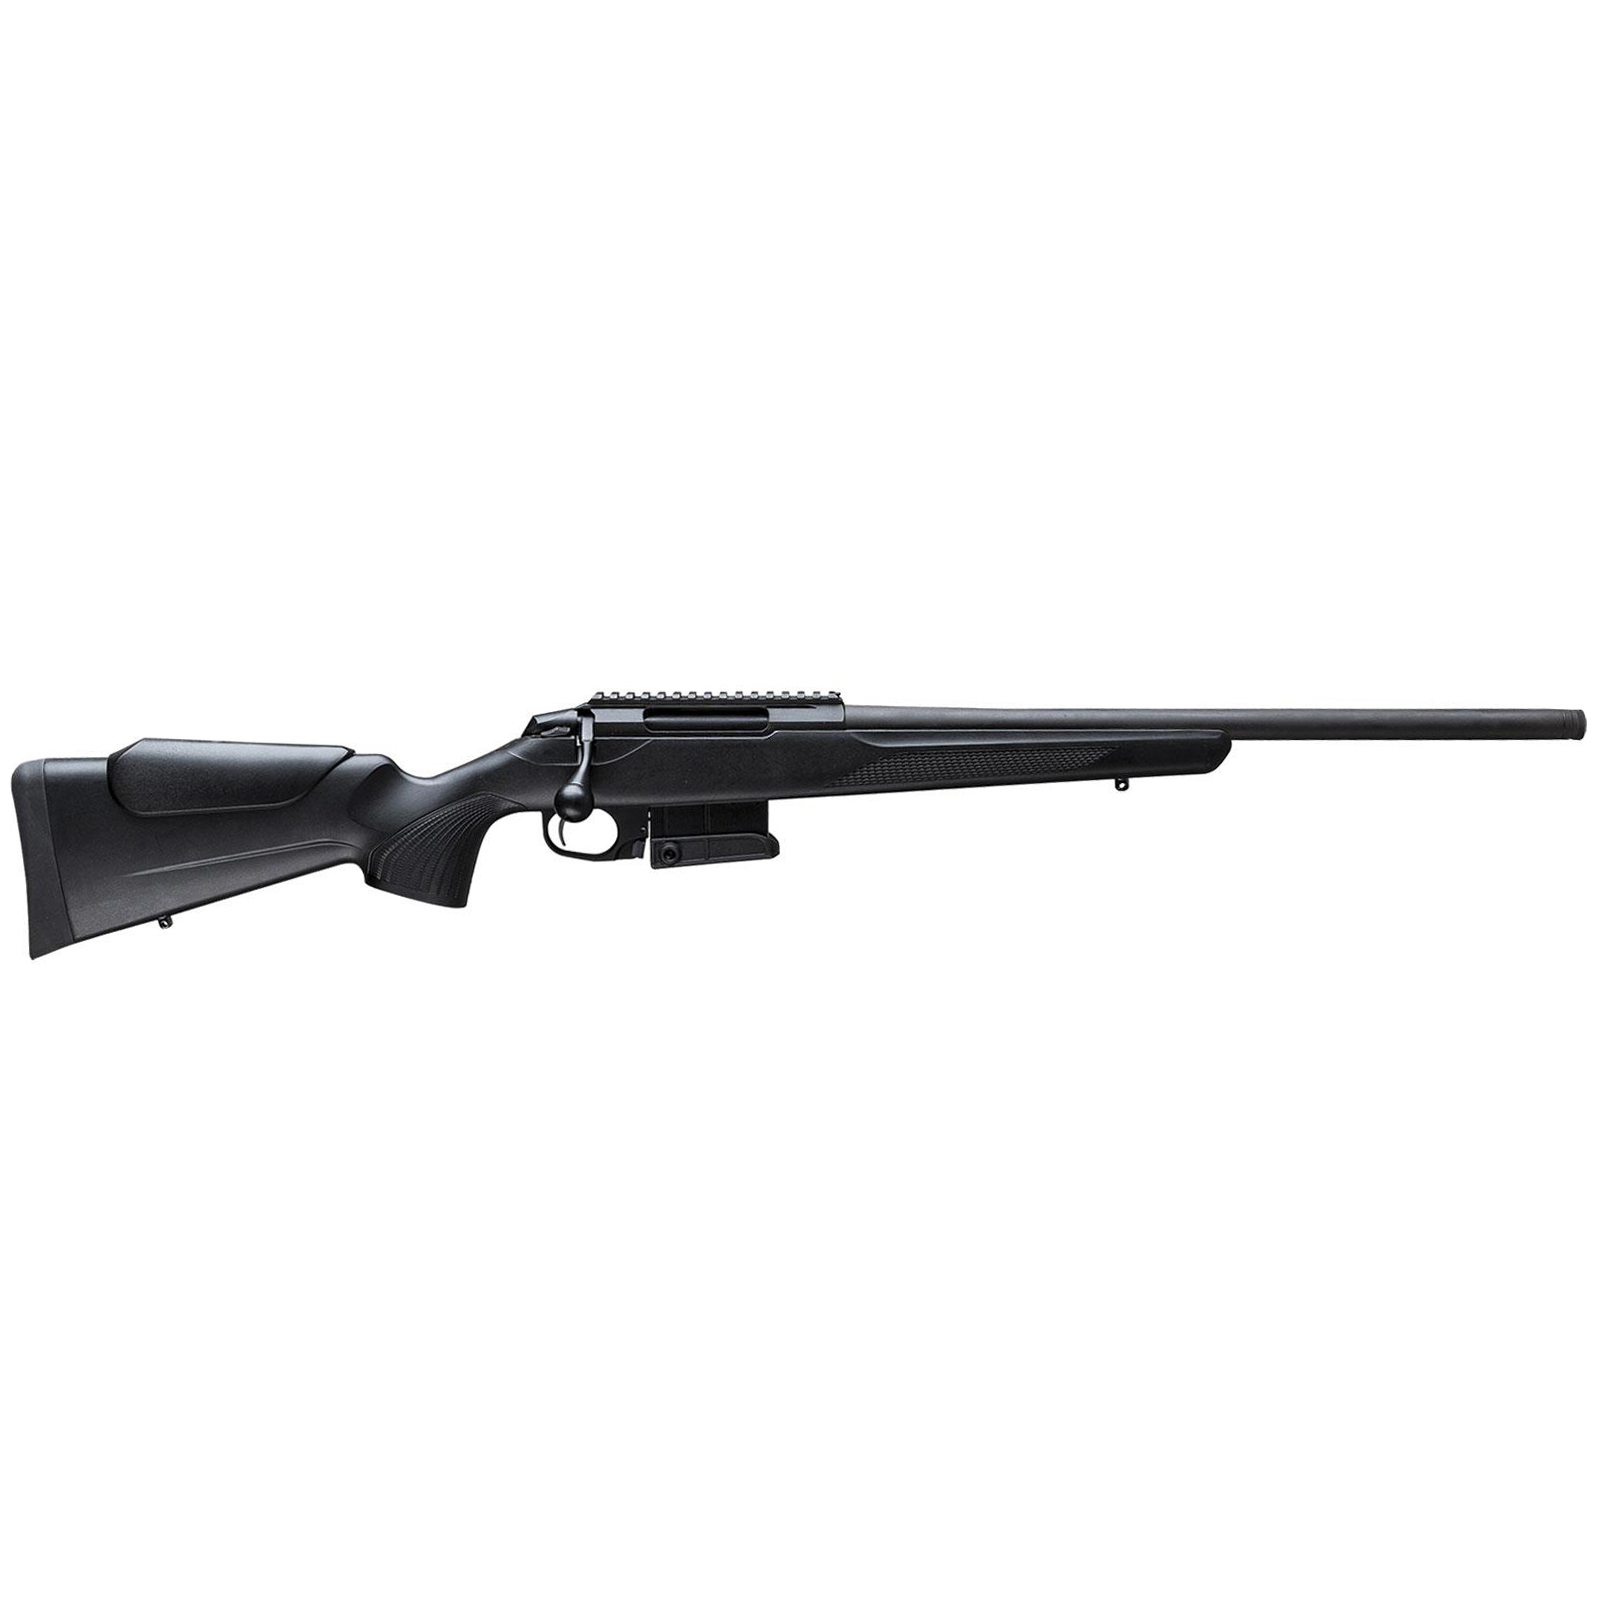 Tikka T3x Compact Tactical Rifle, 6.5mm Creedmoor, Stainless